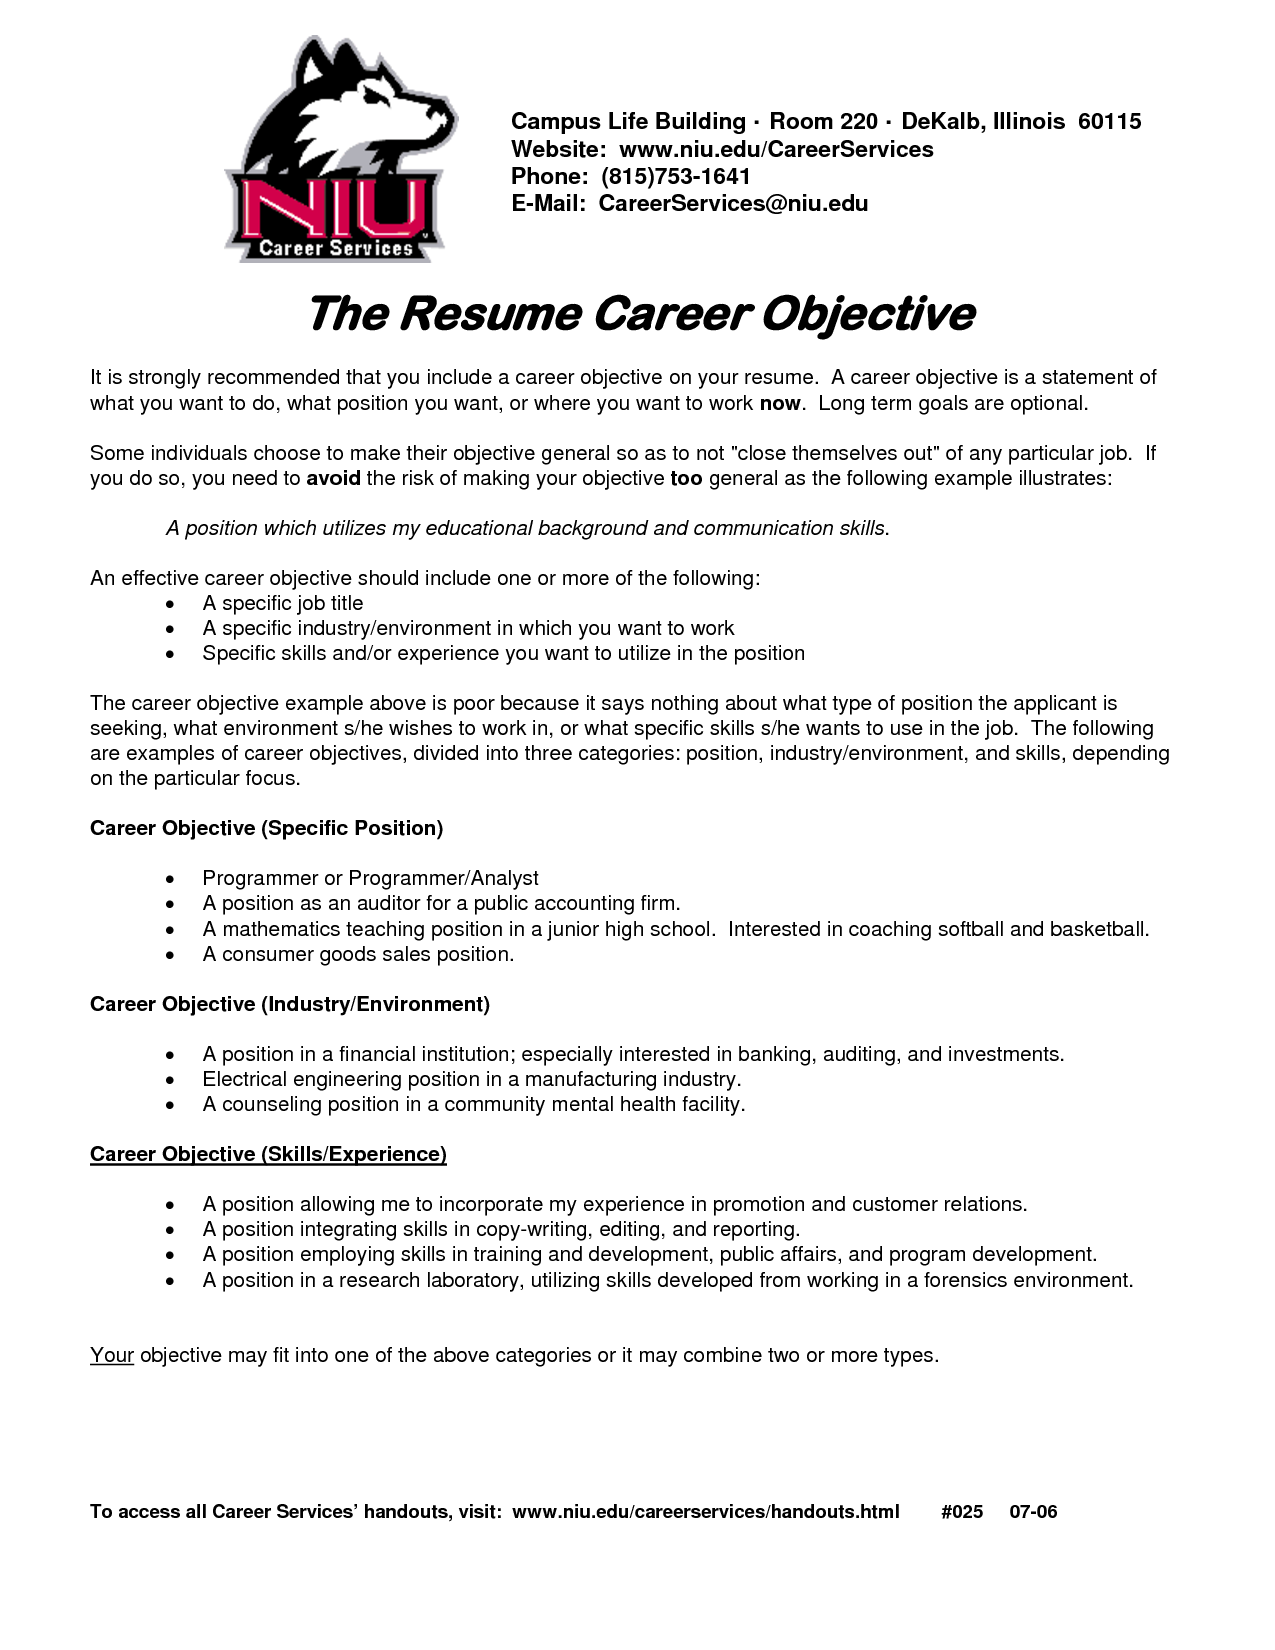 Objective For Customer Service Resume Httpswwwgooglesearchqobjective Resume  Resume